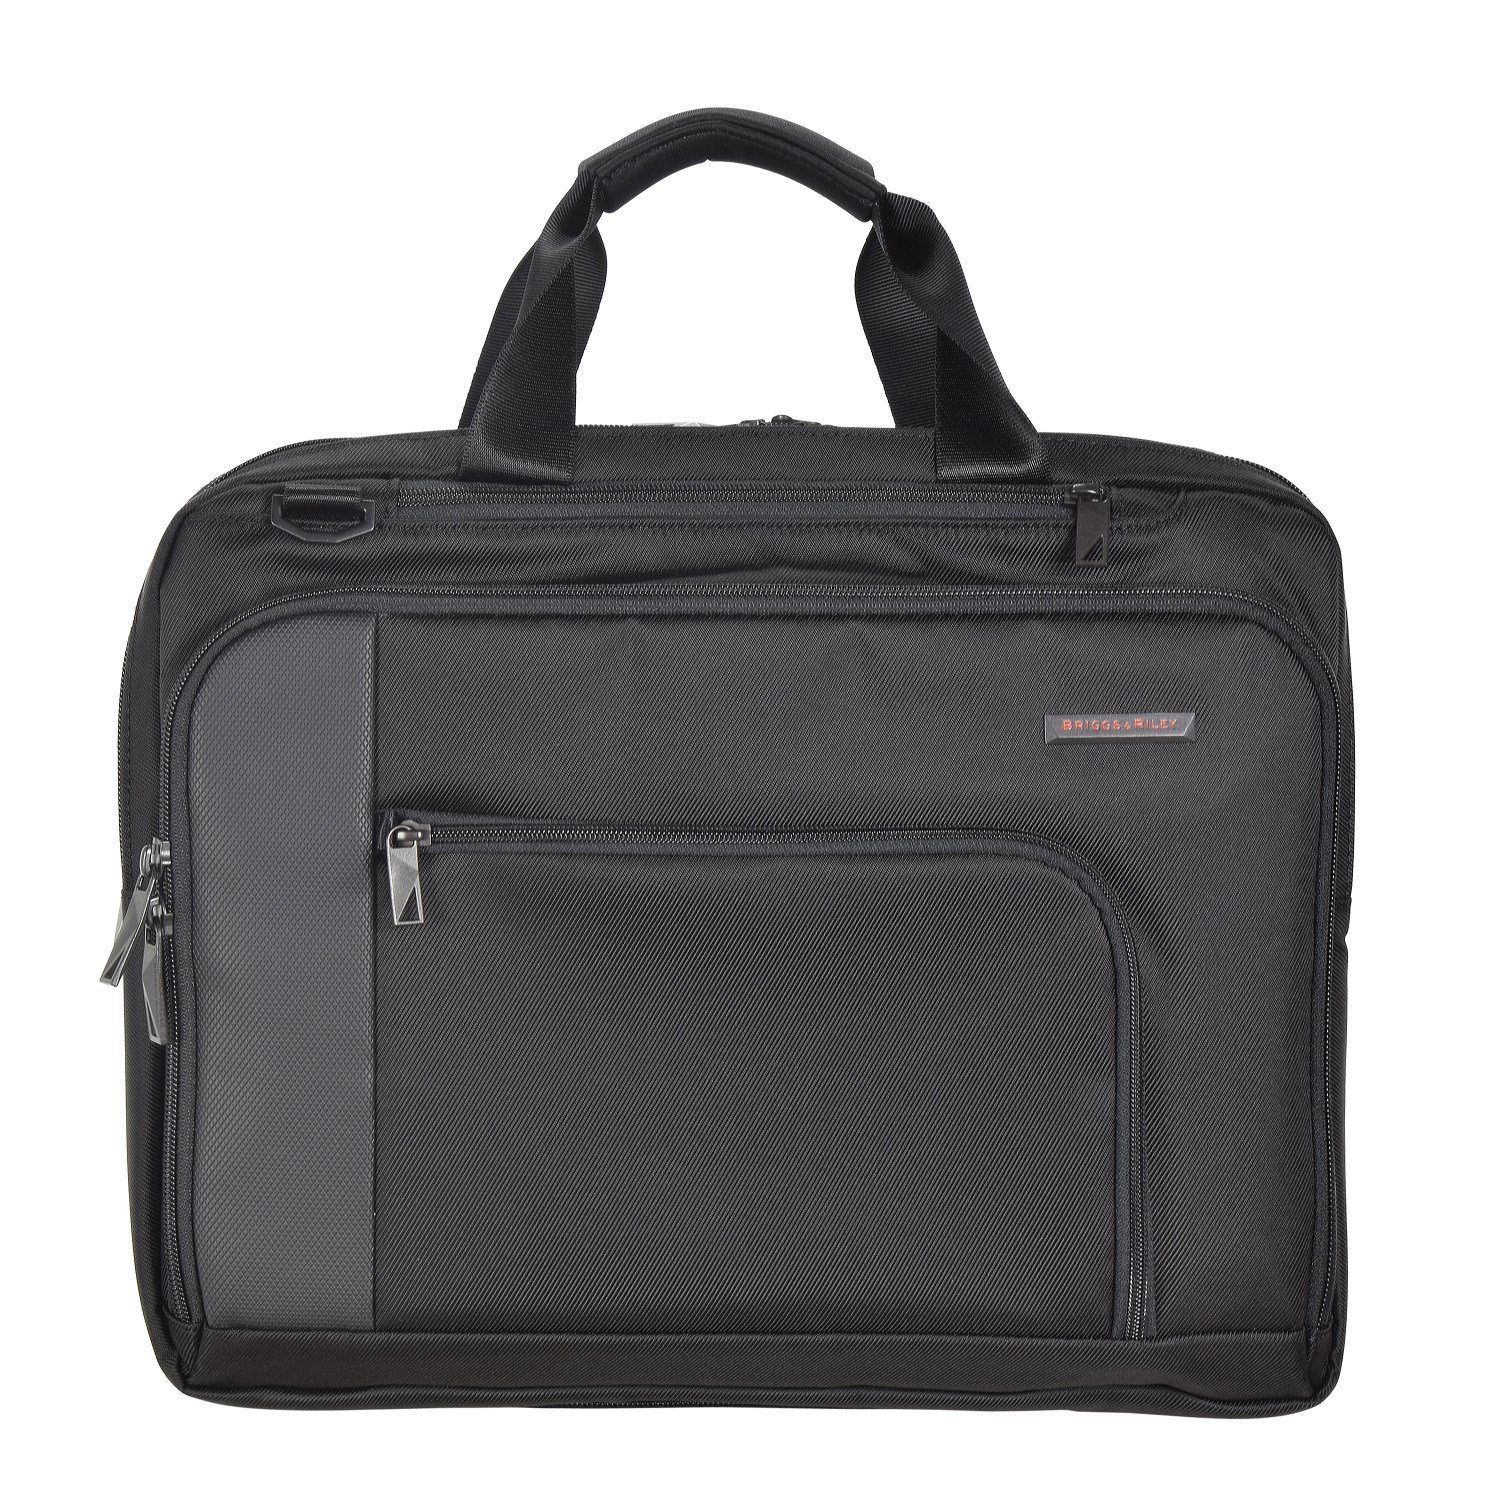 Briggs&Riley Verb Aktentasche III 41 cm Laptopfach